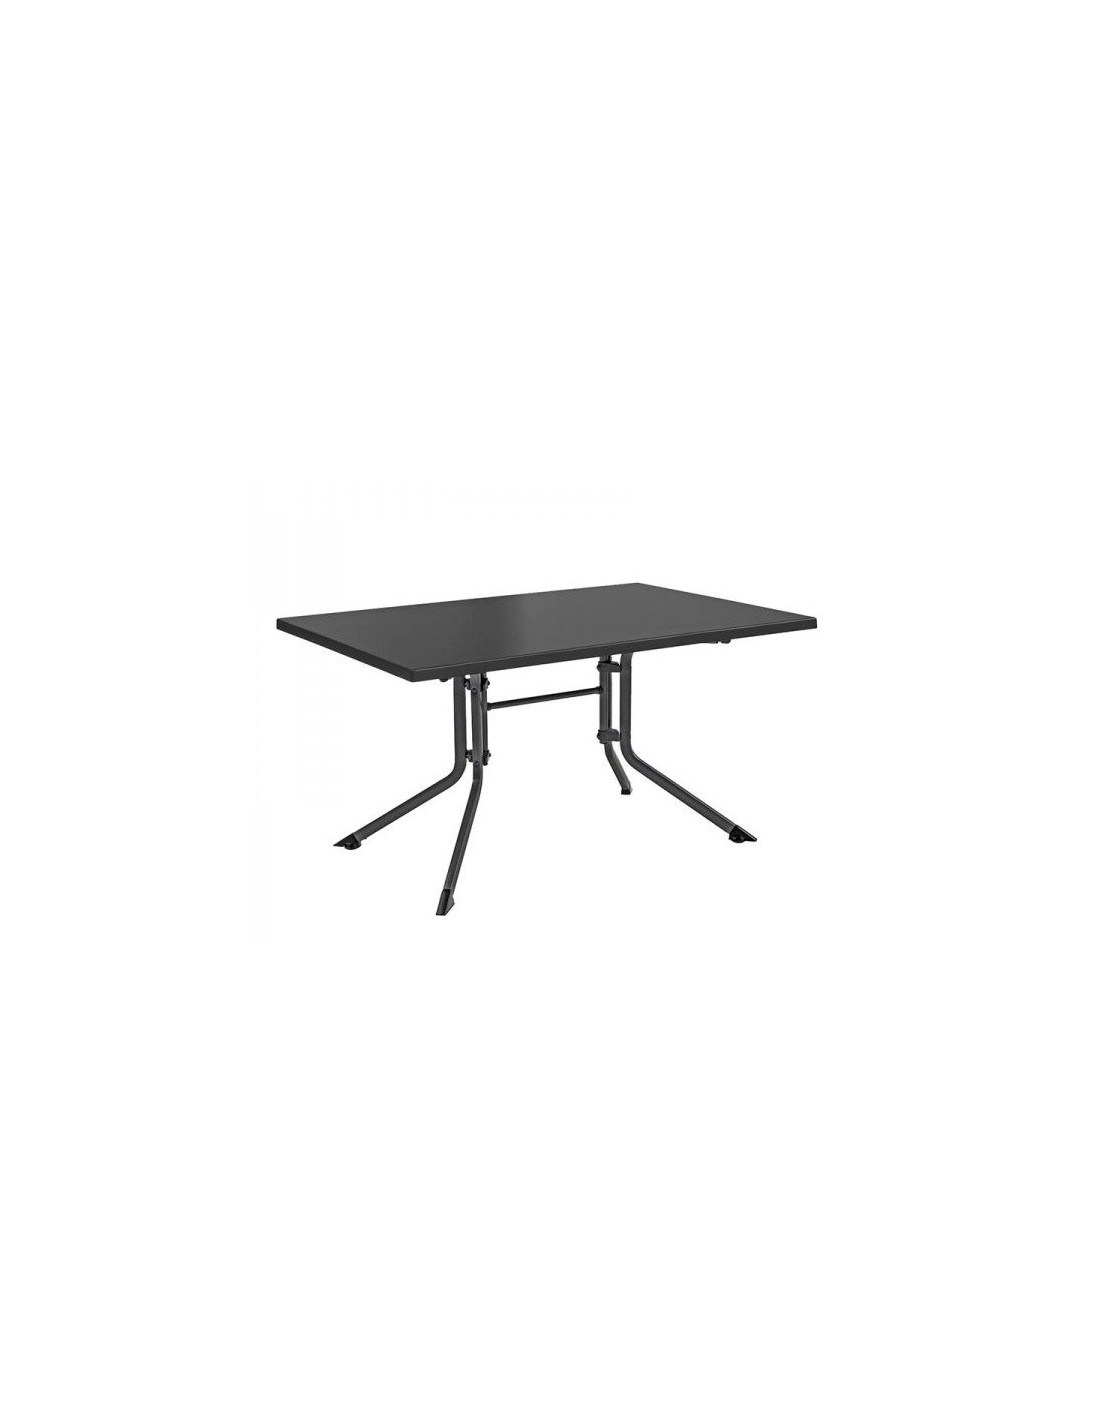 Table de jardin pliante carr e en aluminium mod le advantage for Table jardin pliante